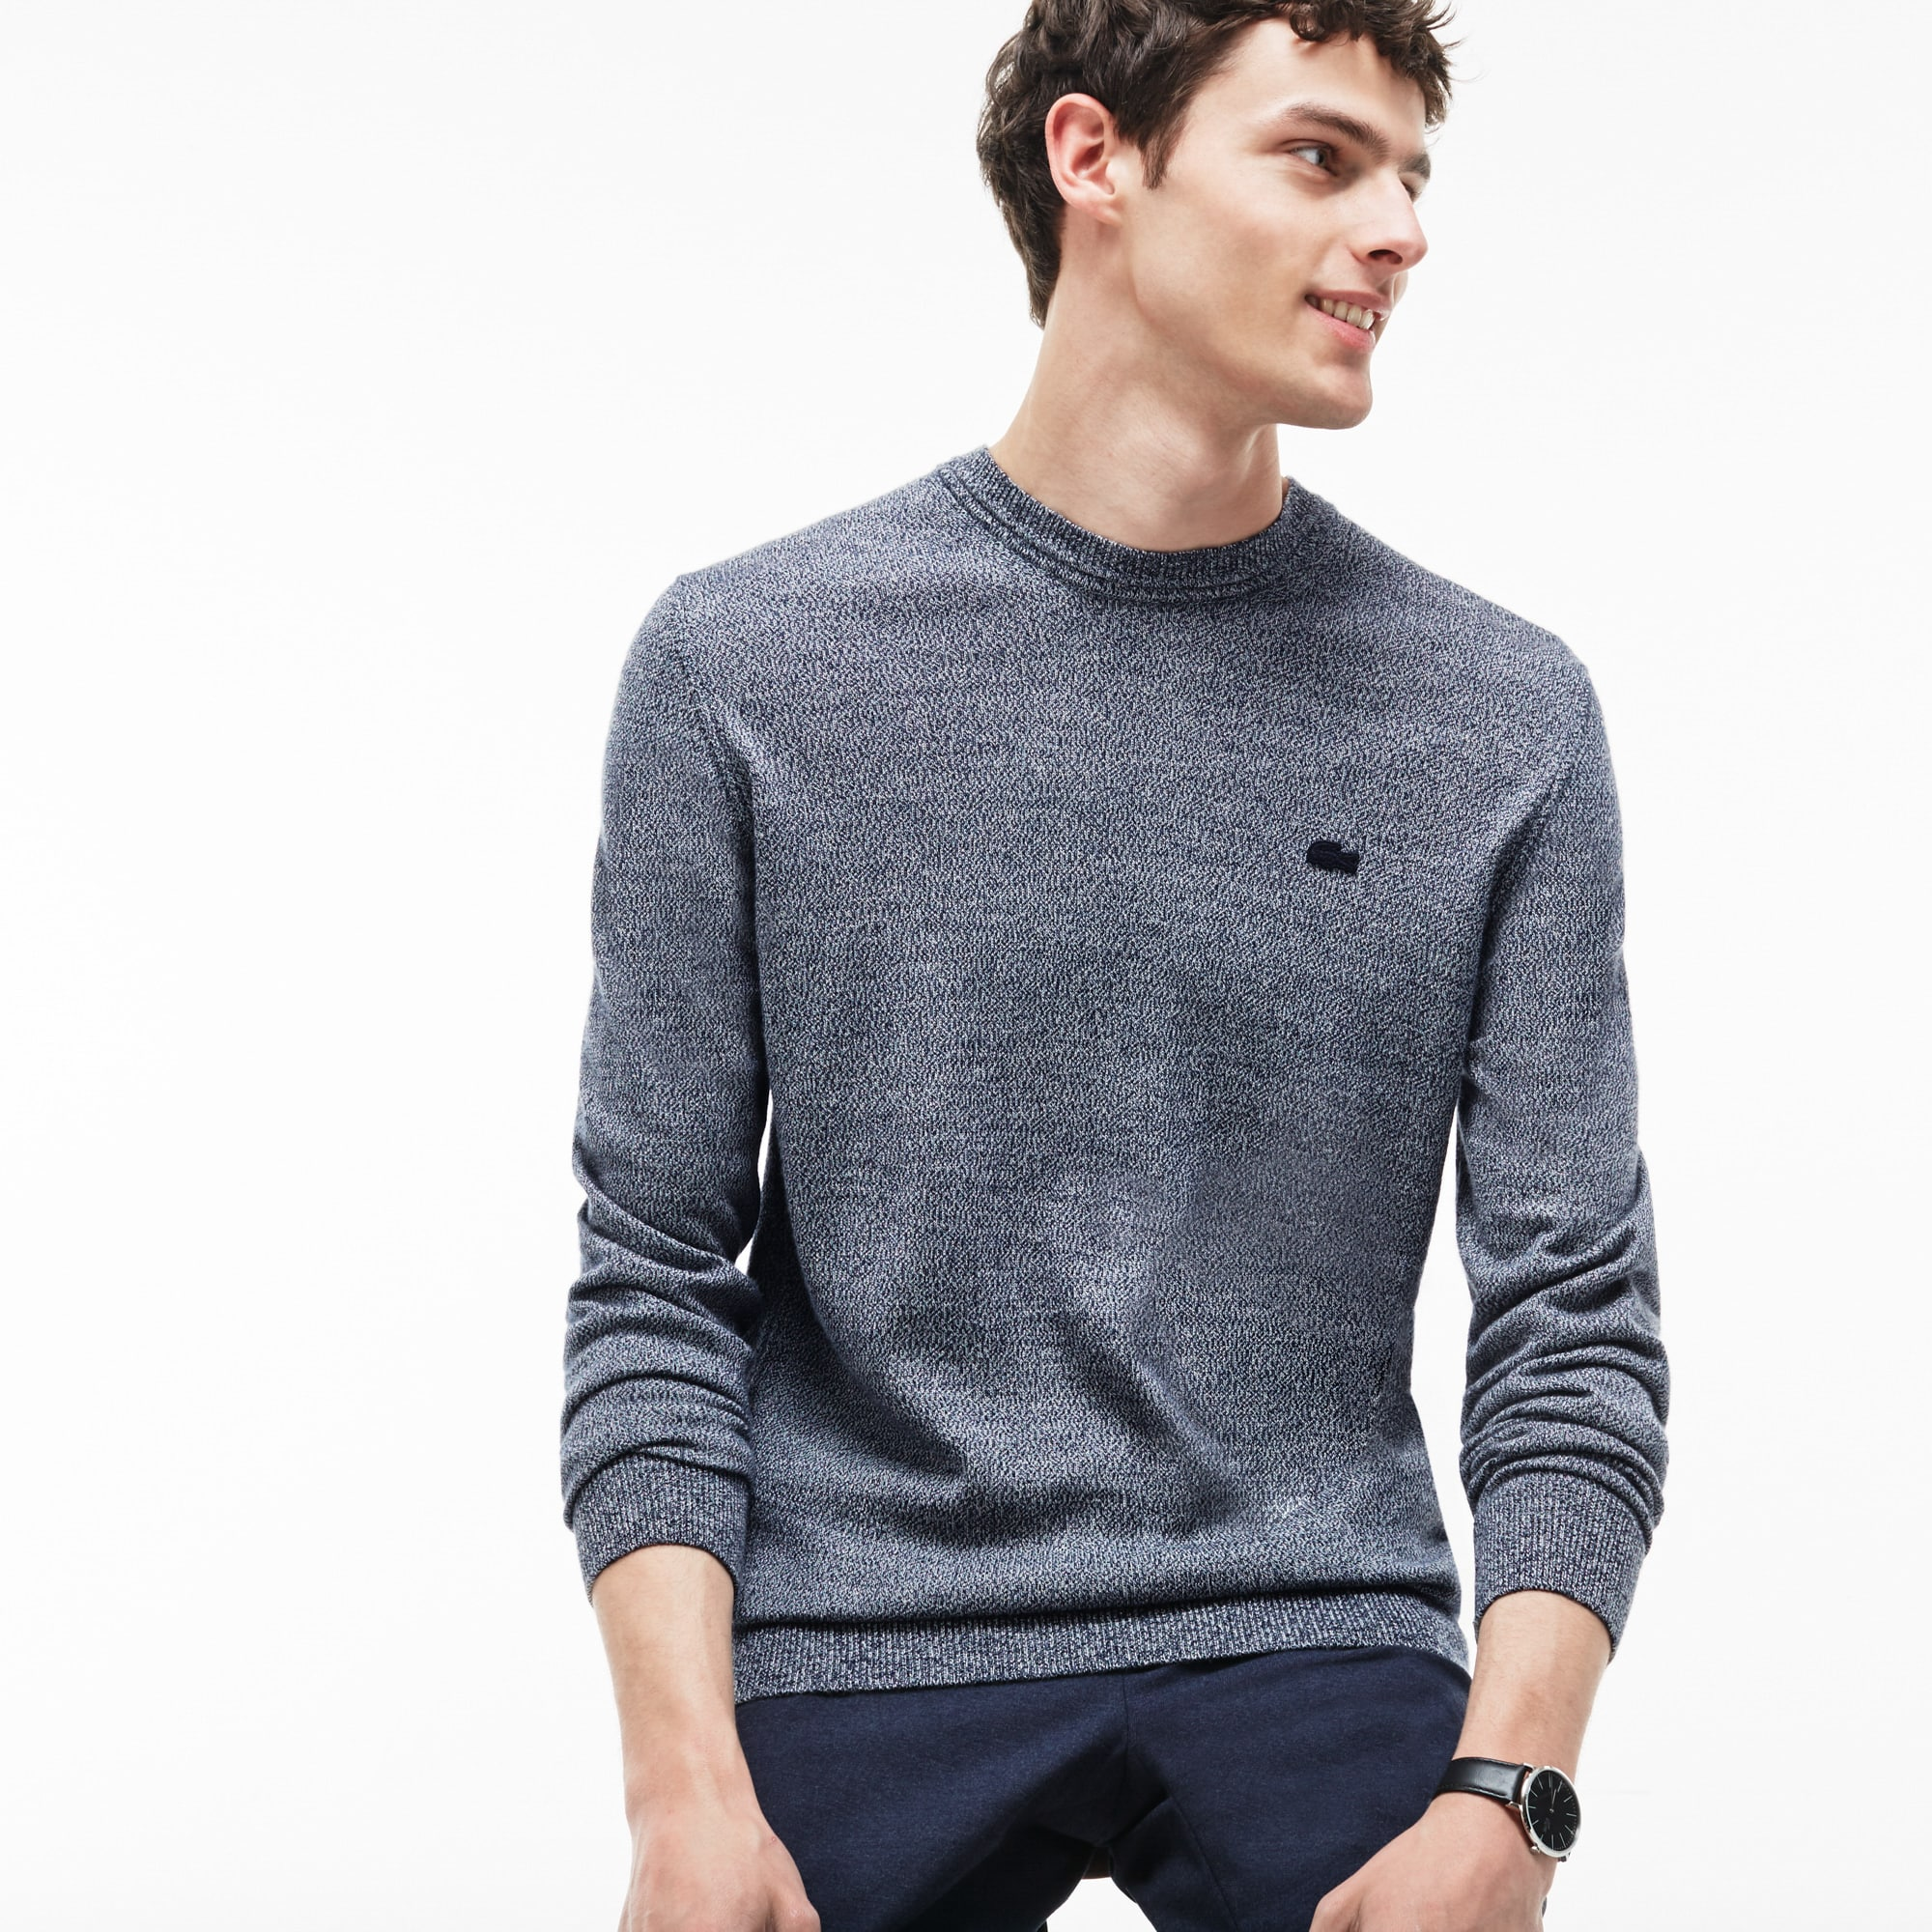 Men's High Neck Wool Jersey Sweater